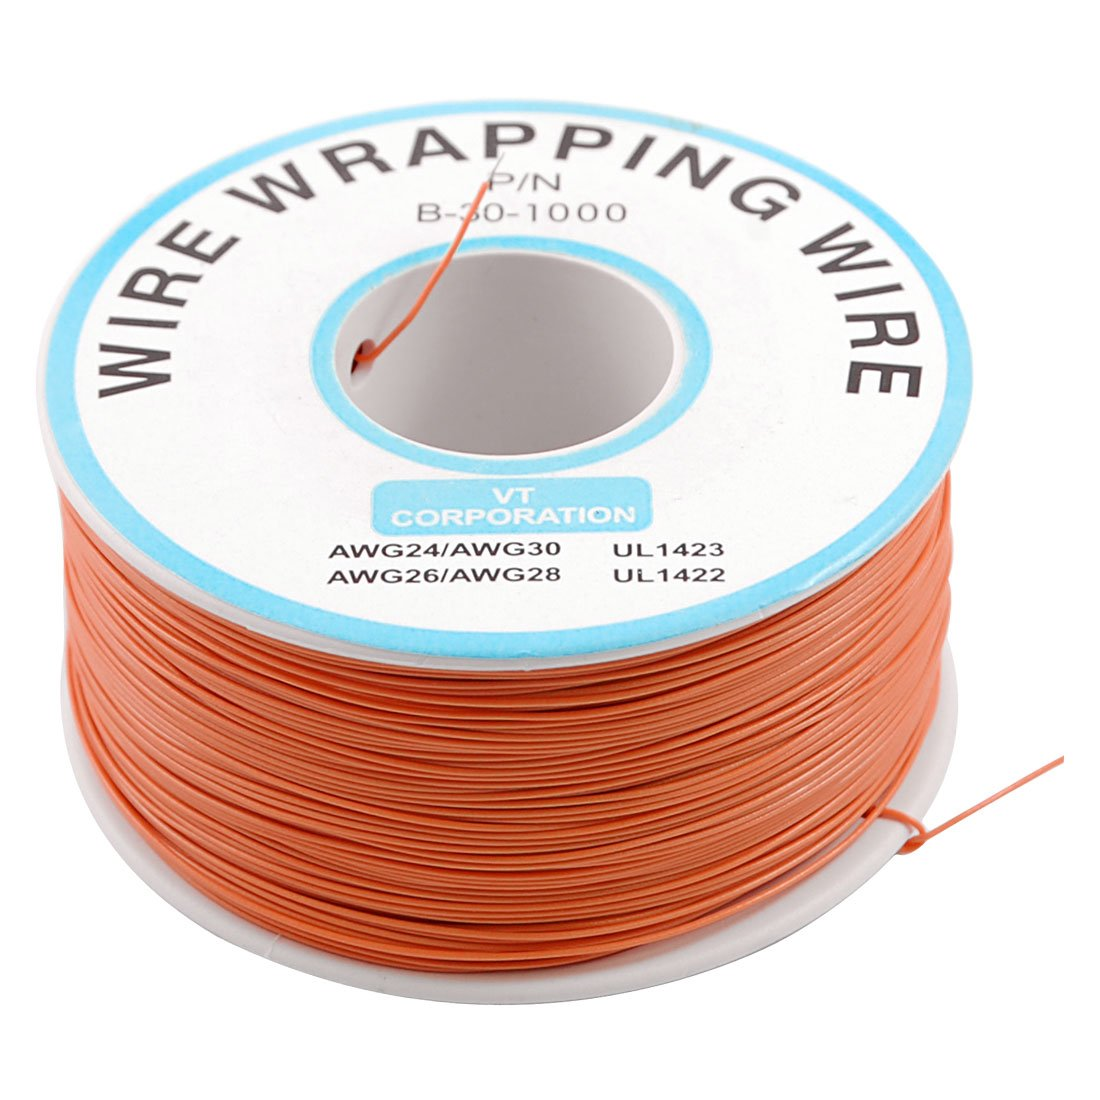 PCB Solder Orange Flexible 0.5mm Outside Dia 30AWG Wire Wrapping Wrap 1000Ft 1pcs ok line 0 5mm 30awg wire wrapping wrap flexible insulation tin plated jumper cable 1000ft pcb flying jumper wire